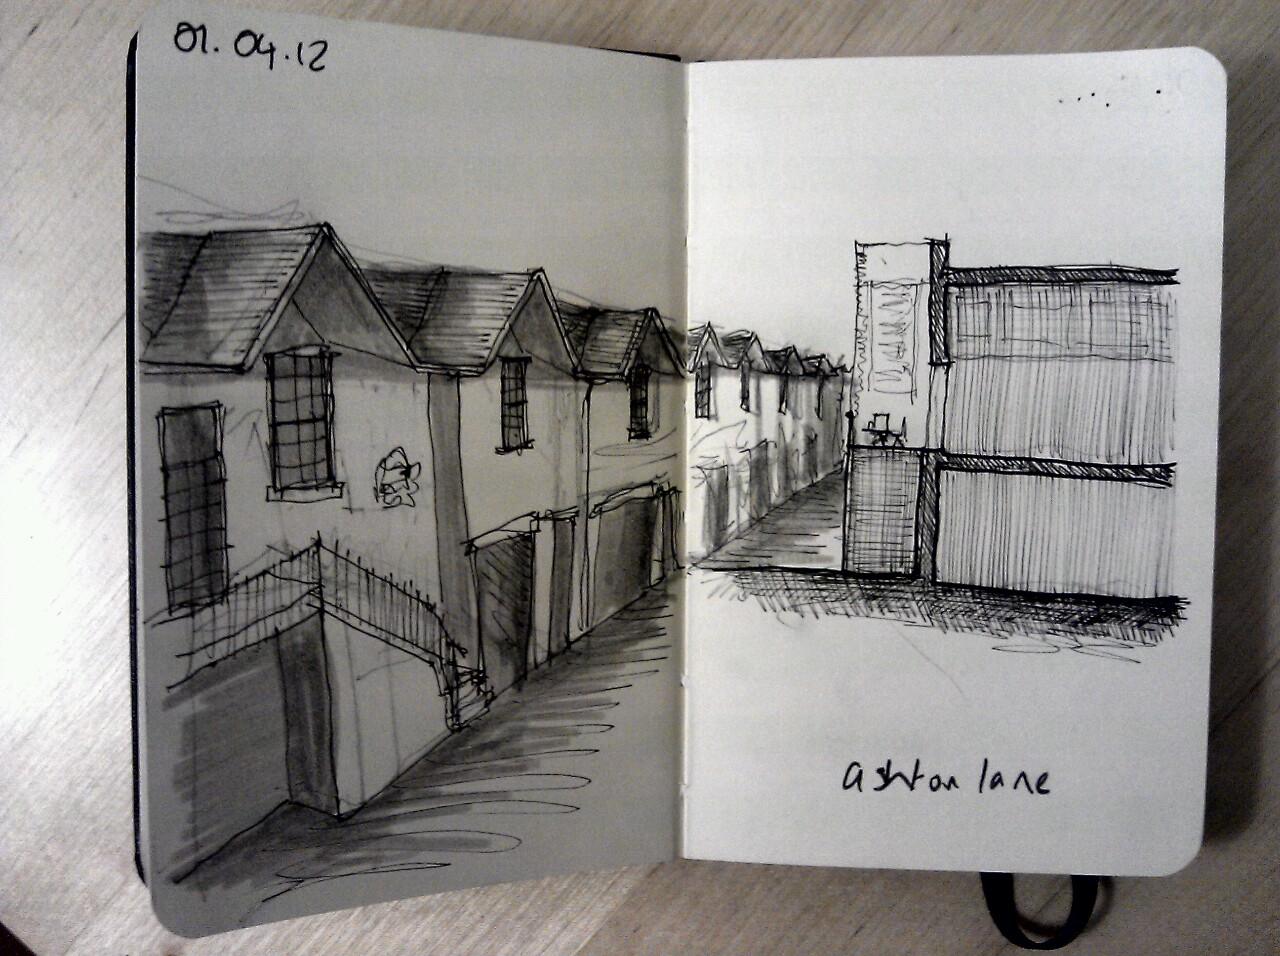 365 drawings later … day 61 … ashton lane (great place for a hair o' the dug)